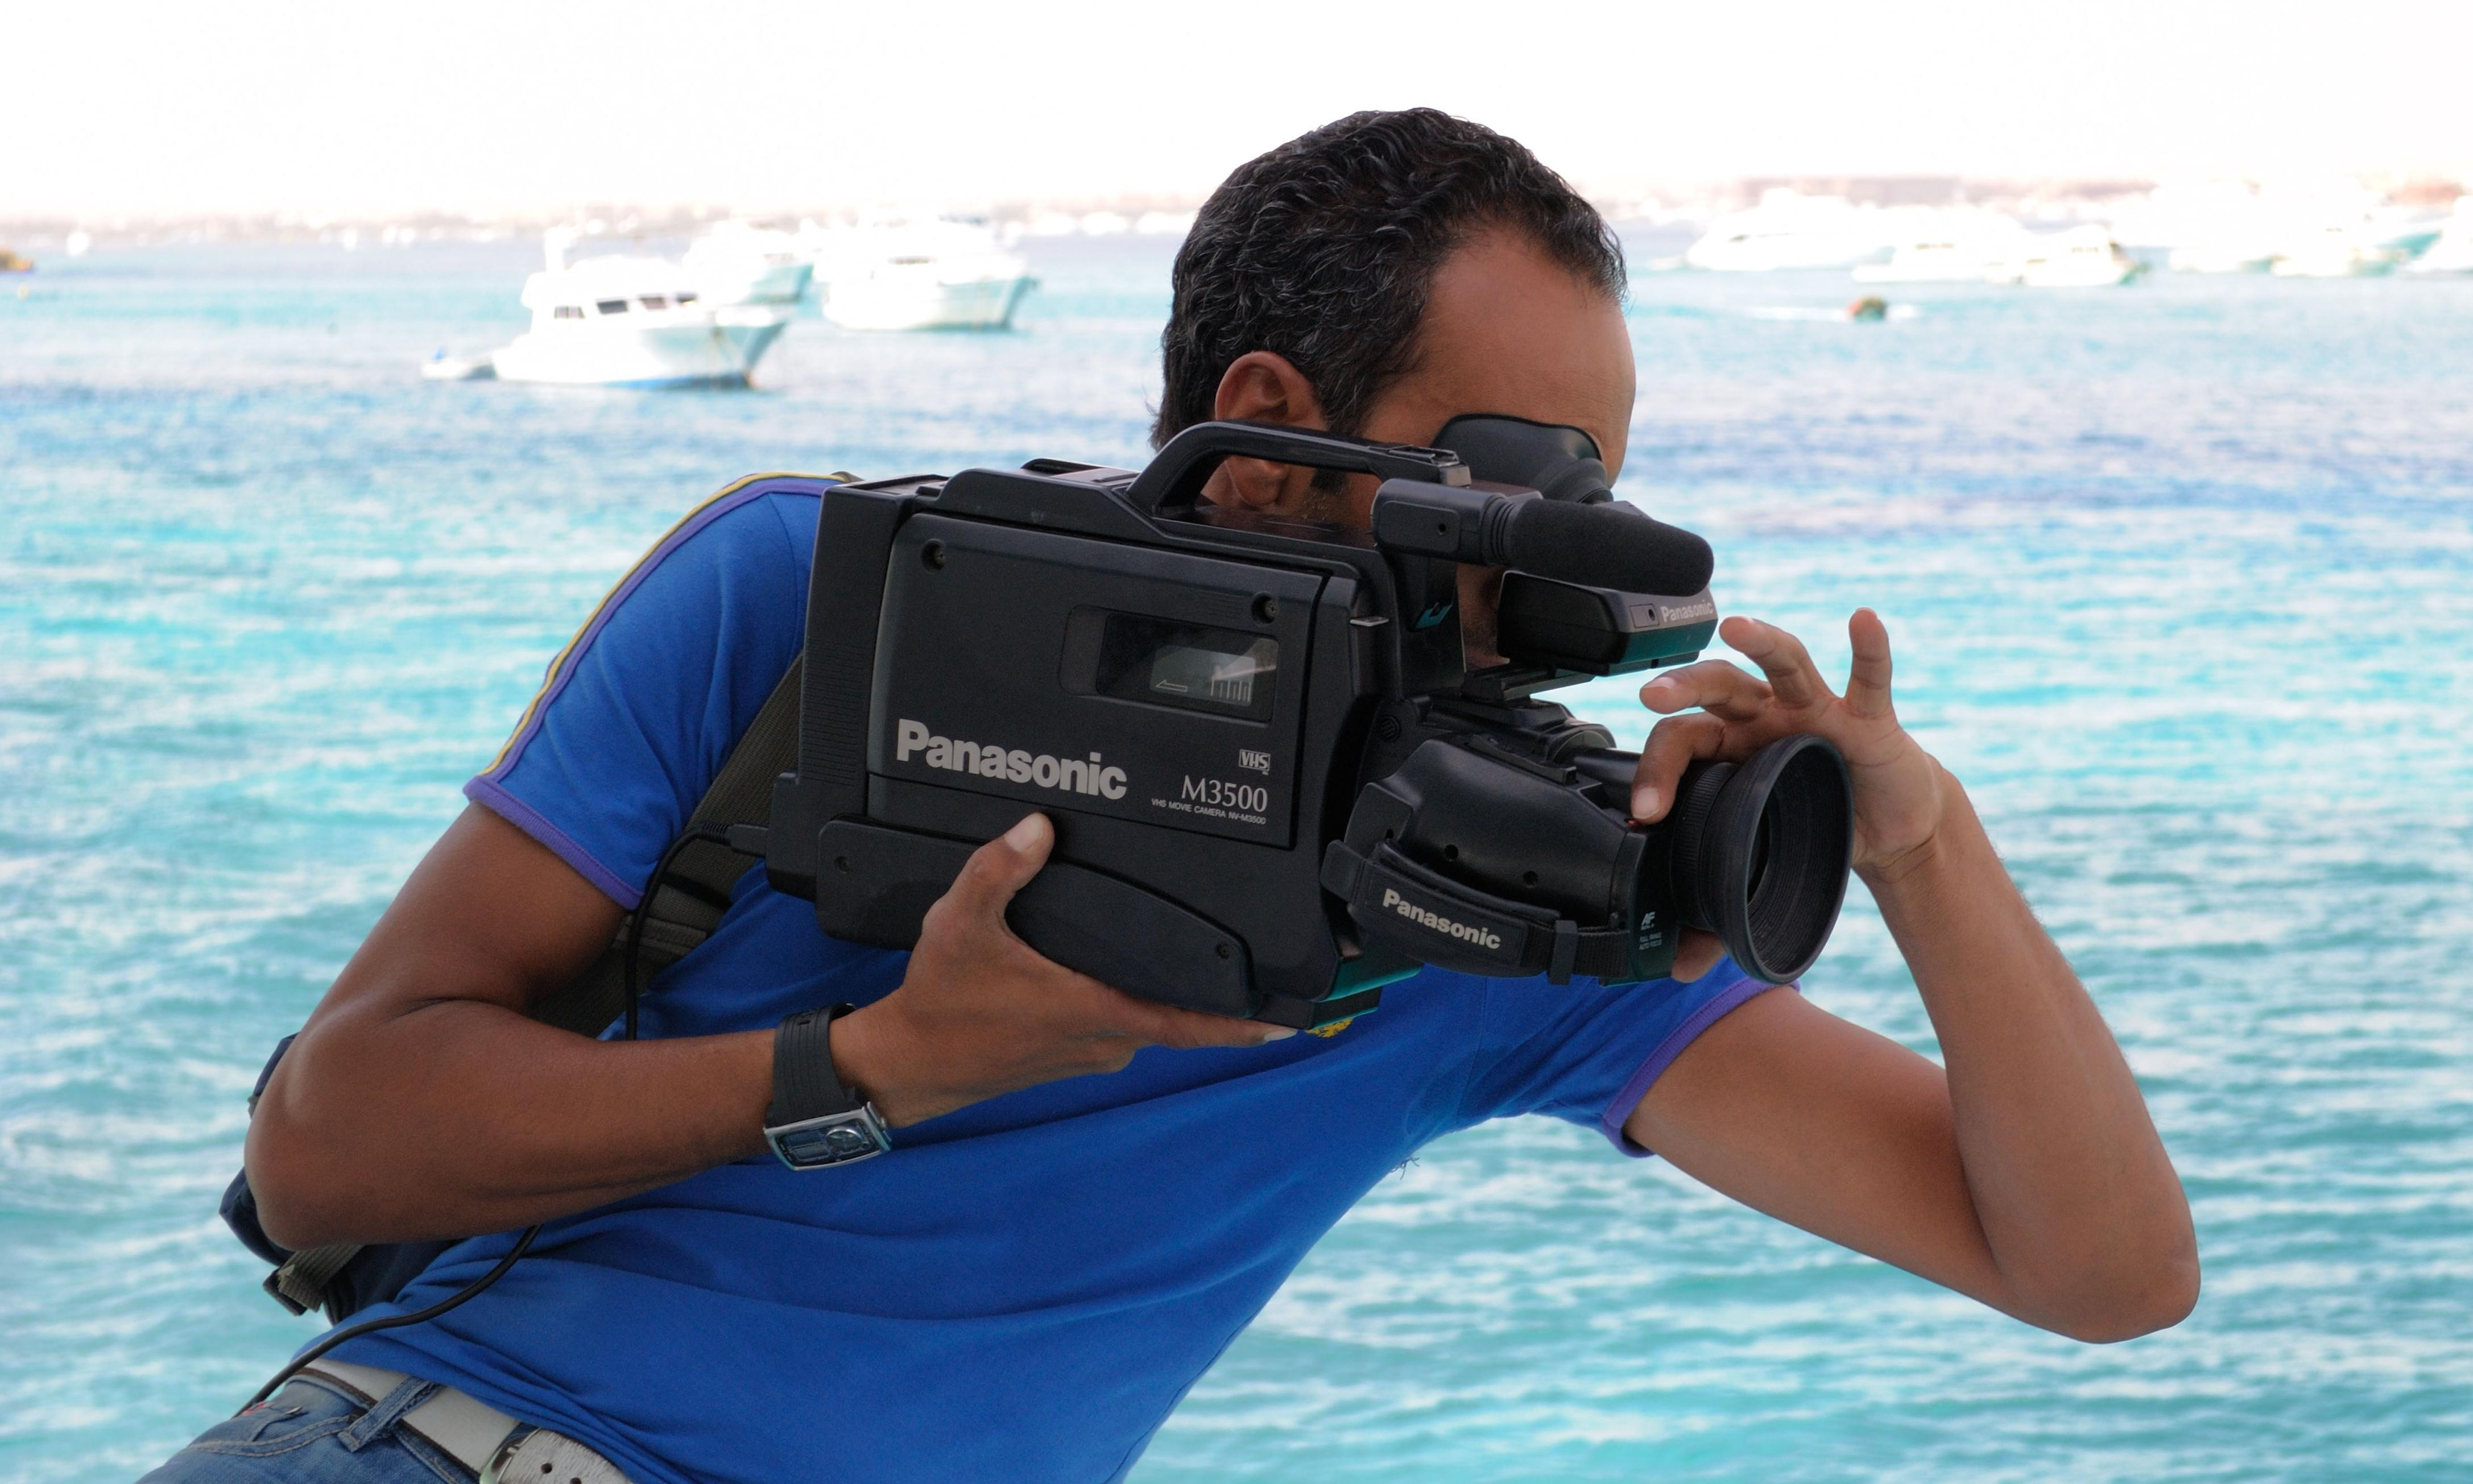 Lights, camera, no action: why we shouldn't mourn the death of the camcorder